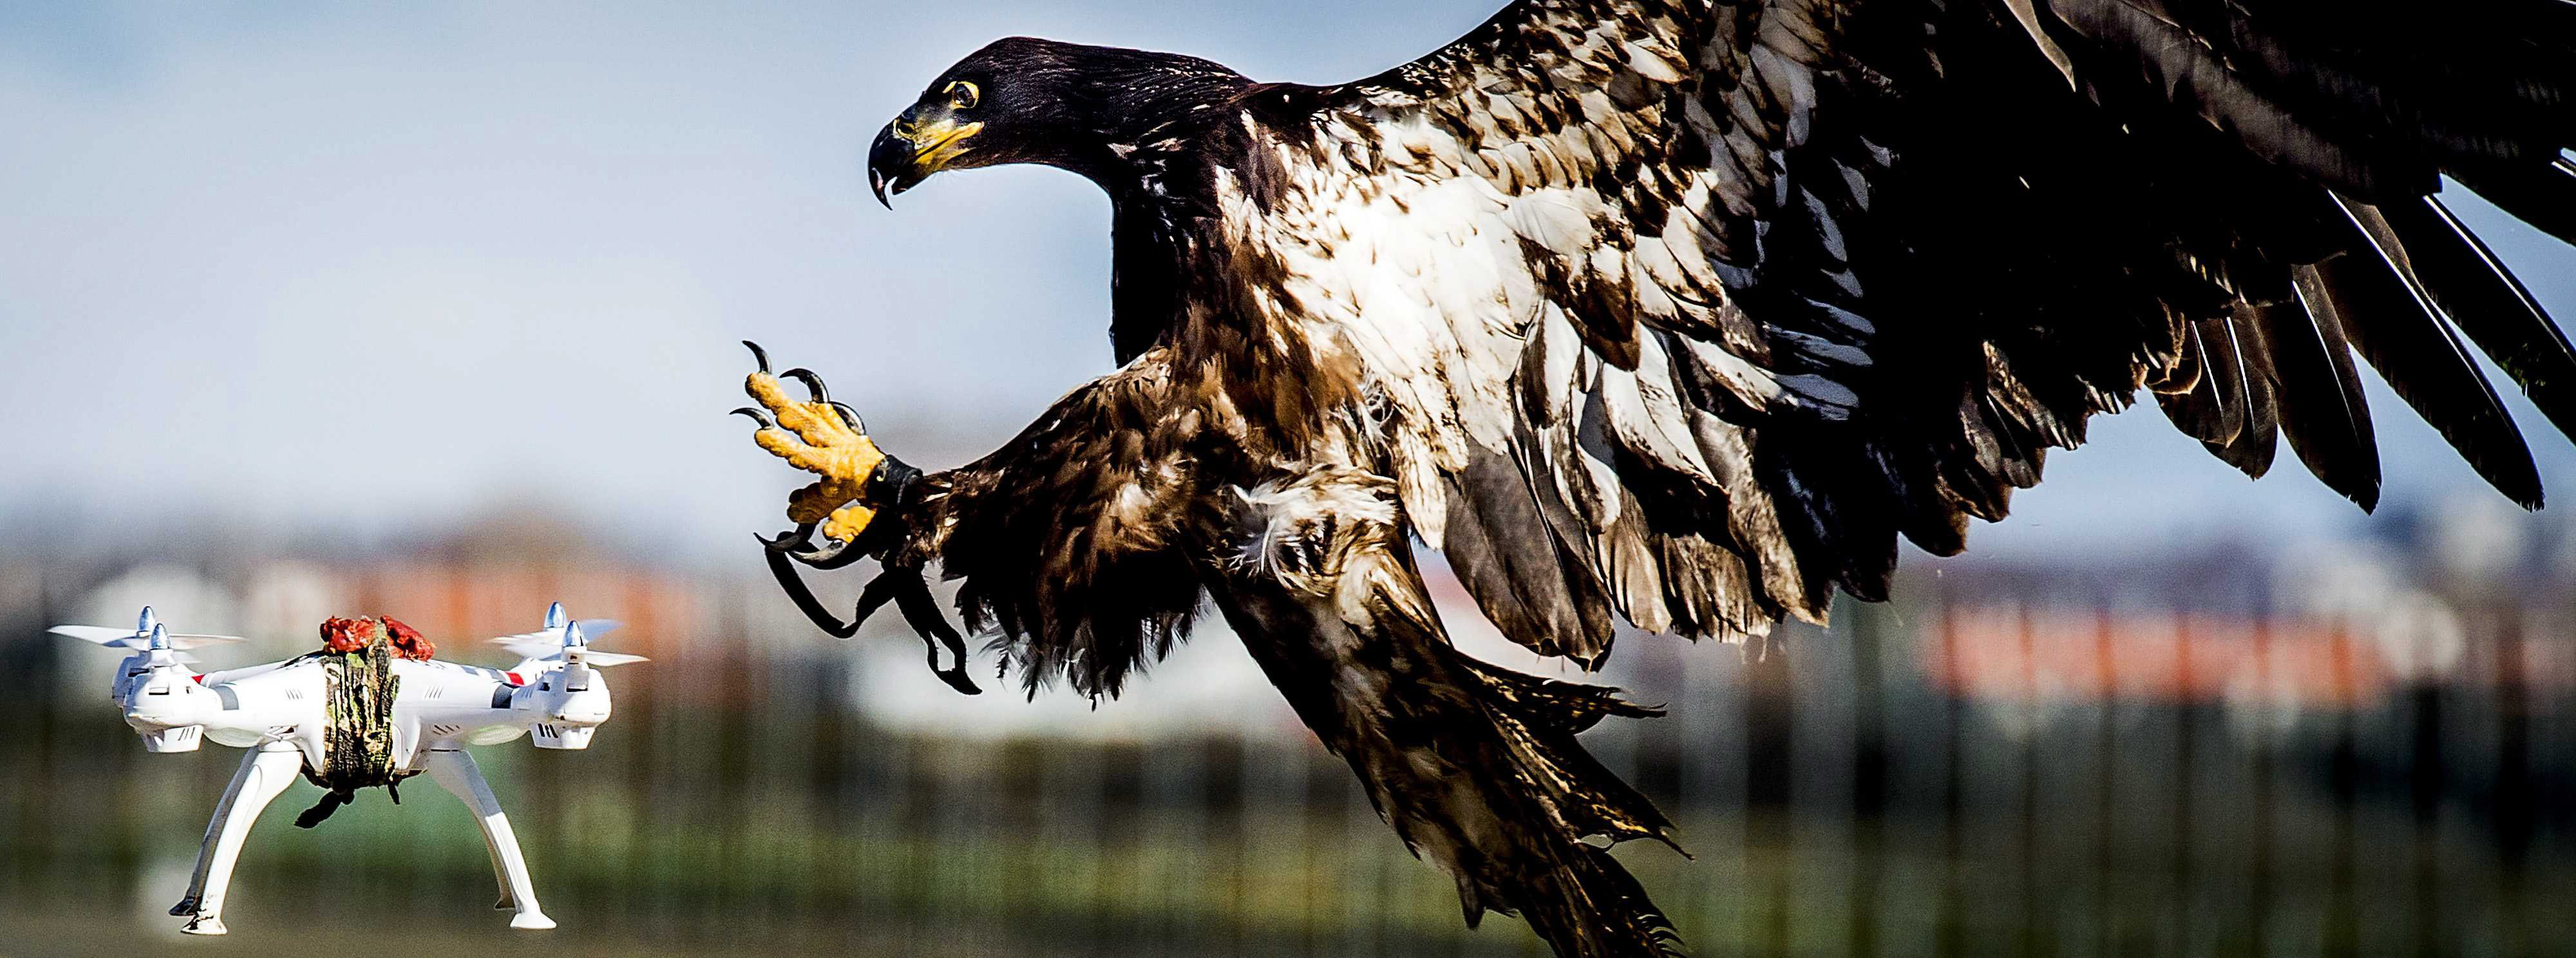 Dutch company trains birds of prey to catch drones...epa05199531 A trained eagle of the company 'Guard from Above' grabs a hovering drone during a exercise of the Dutch police in Katwijk, The Netherlands, 07 March 2016. The bird of prey can get drones from the air by catching them with his claws. Media reports state that various polices, including London's Metropolitan Police, are taking into consideration the idea that the birds could be deployed against what was described as 'hostile drones'.  EPA/KOEN VAN WEEL